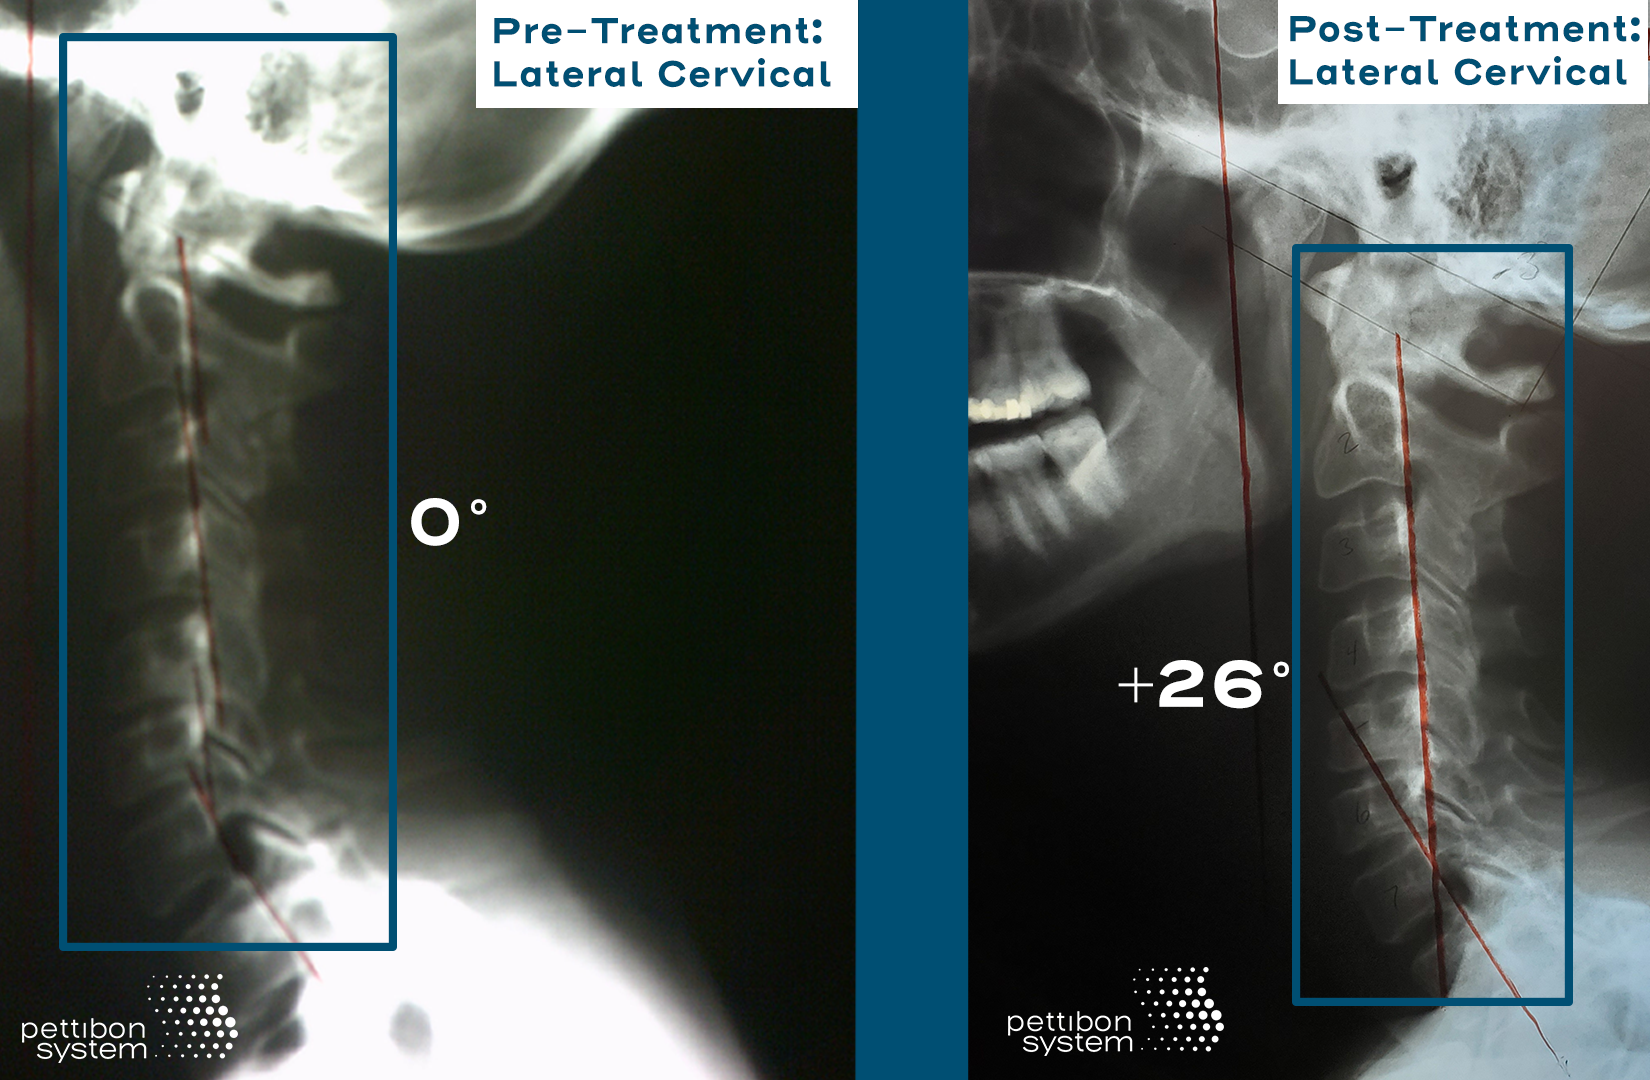 Lisa's lateral cervical X-ray's Pre and Post treatment showing her improvement.